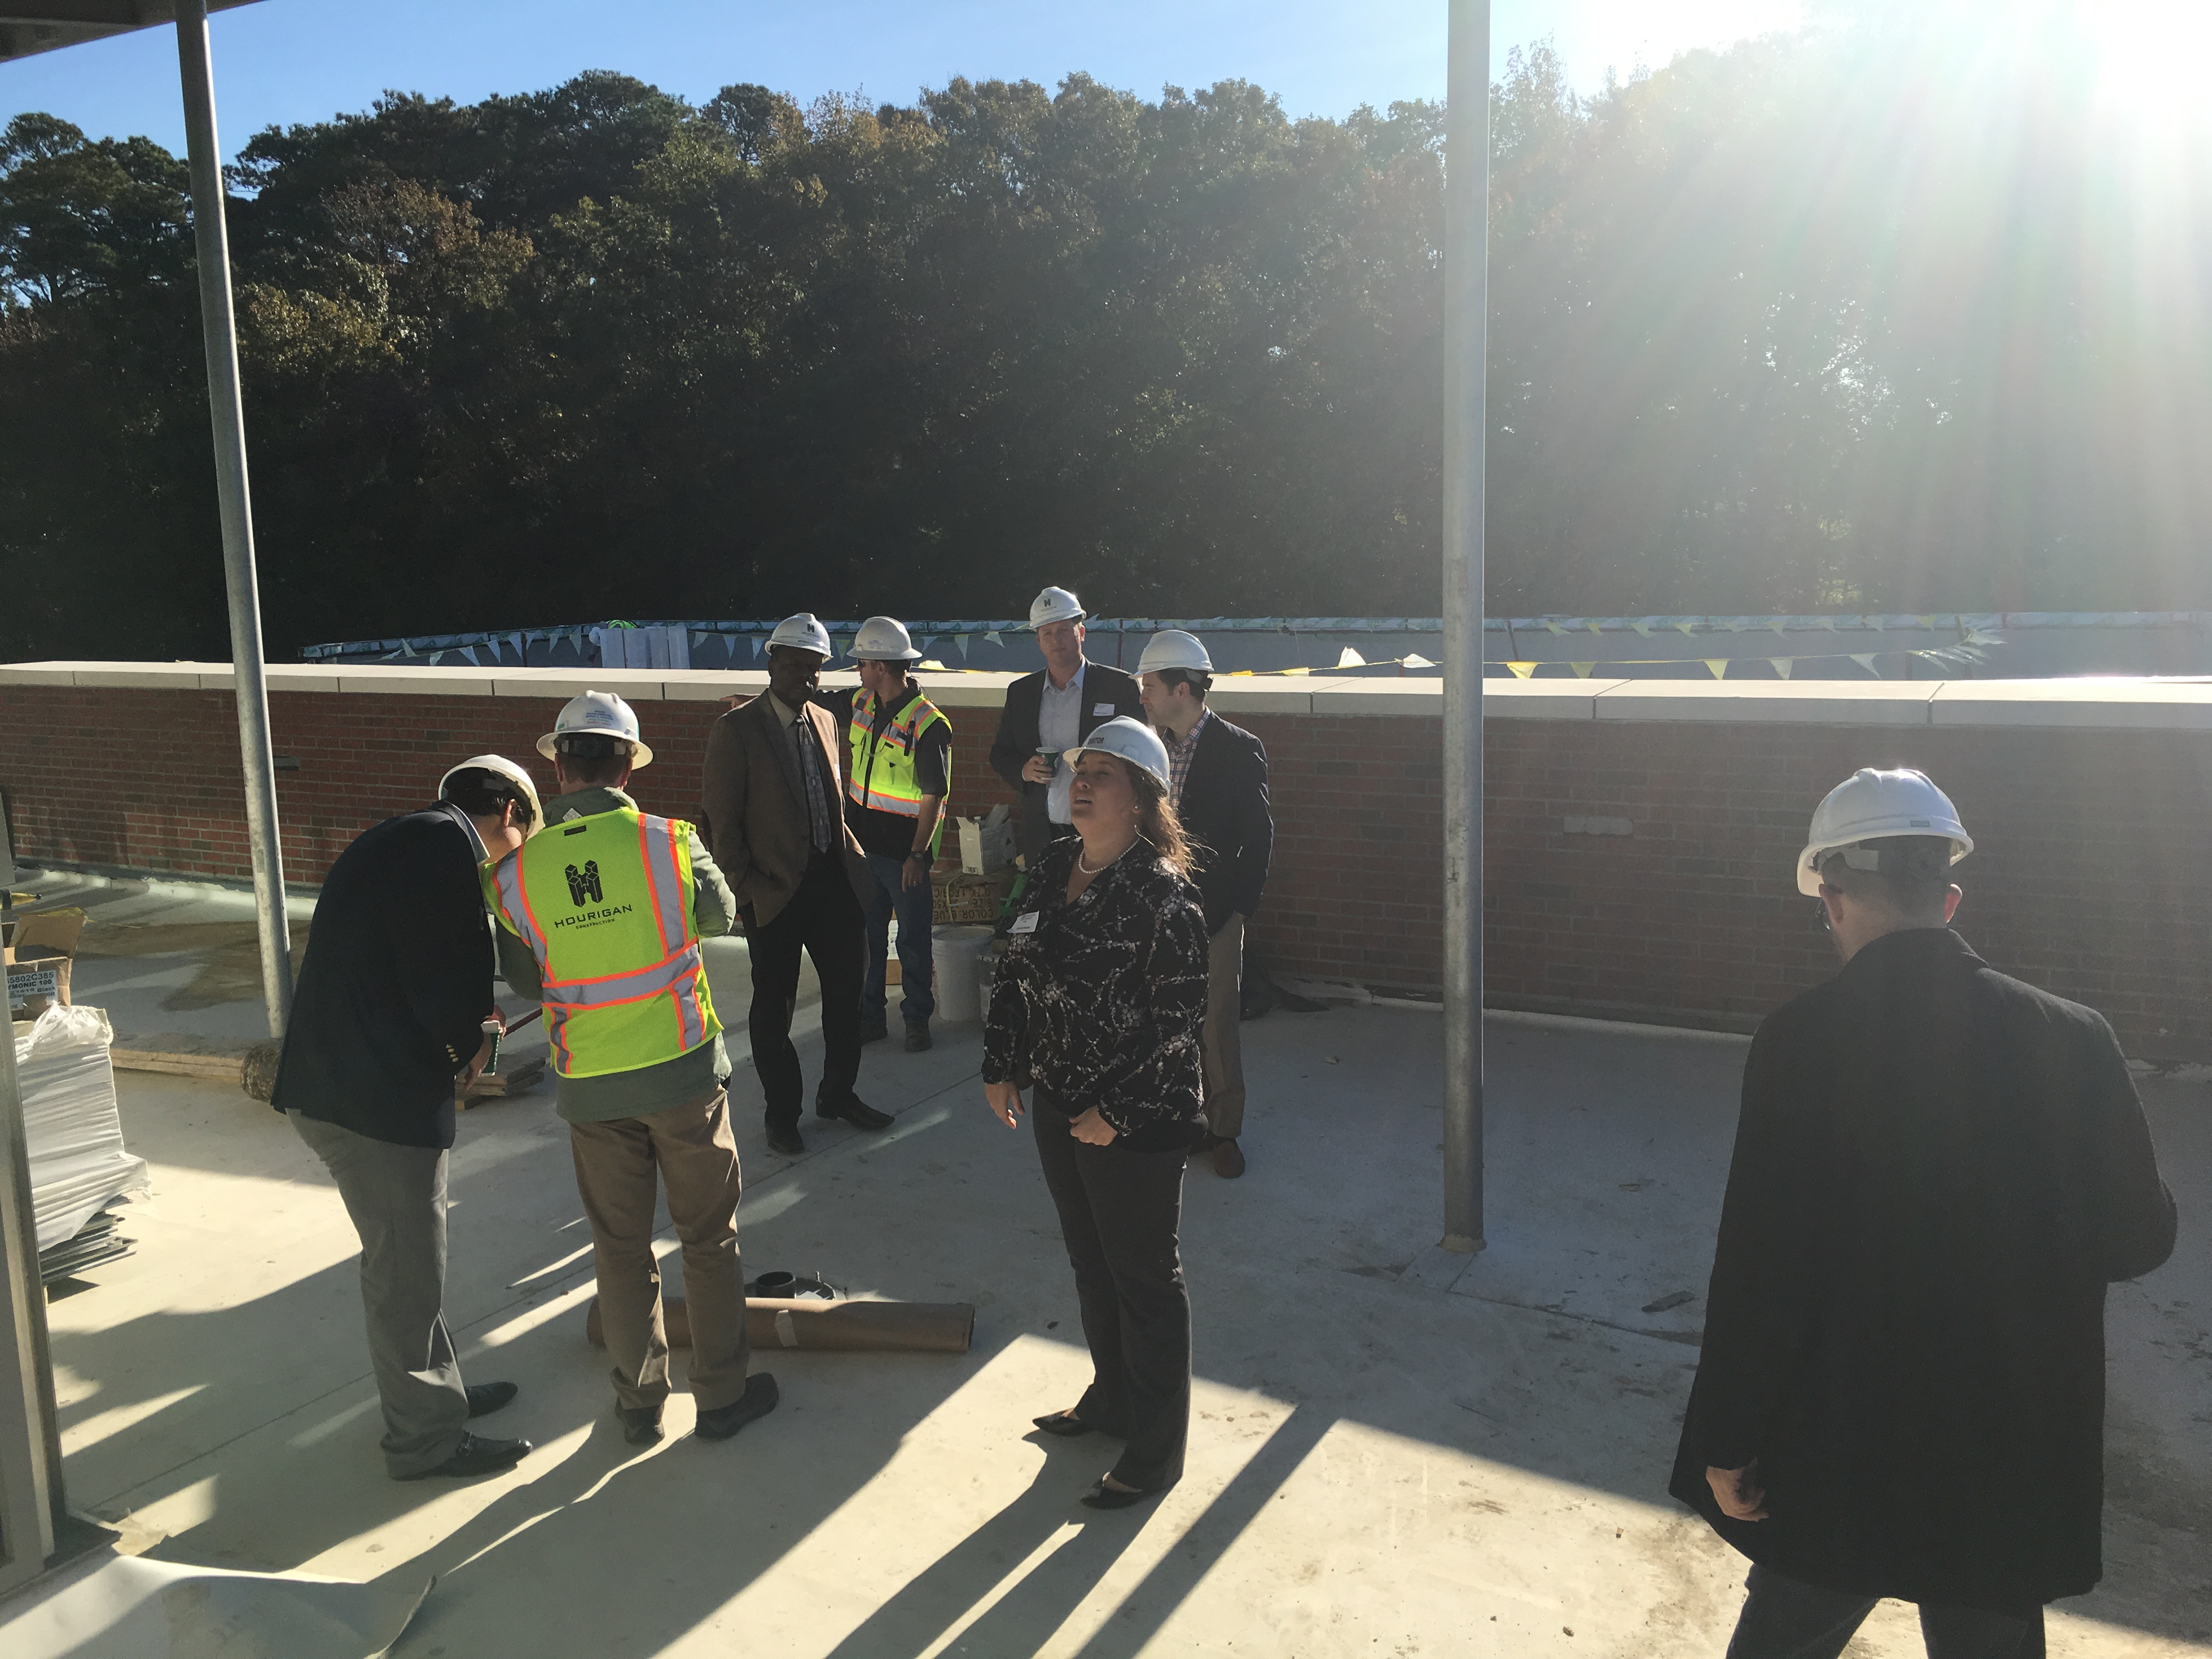 ULI Young Leaders Tour